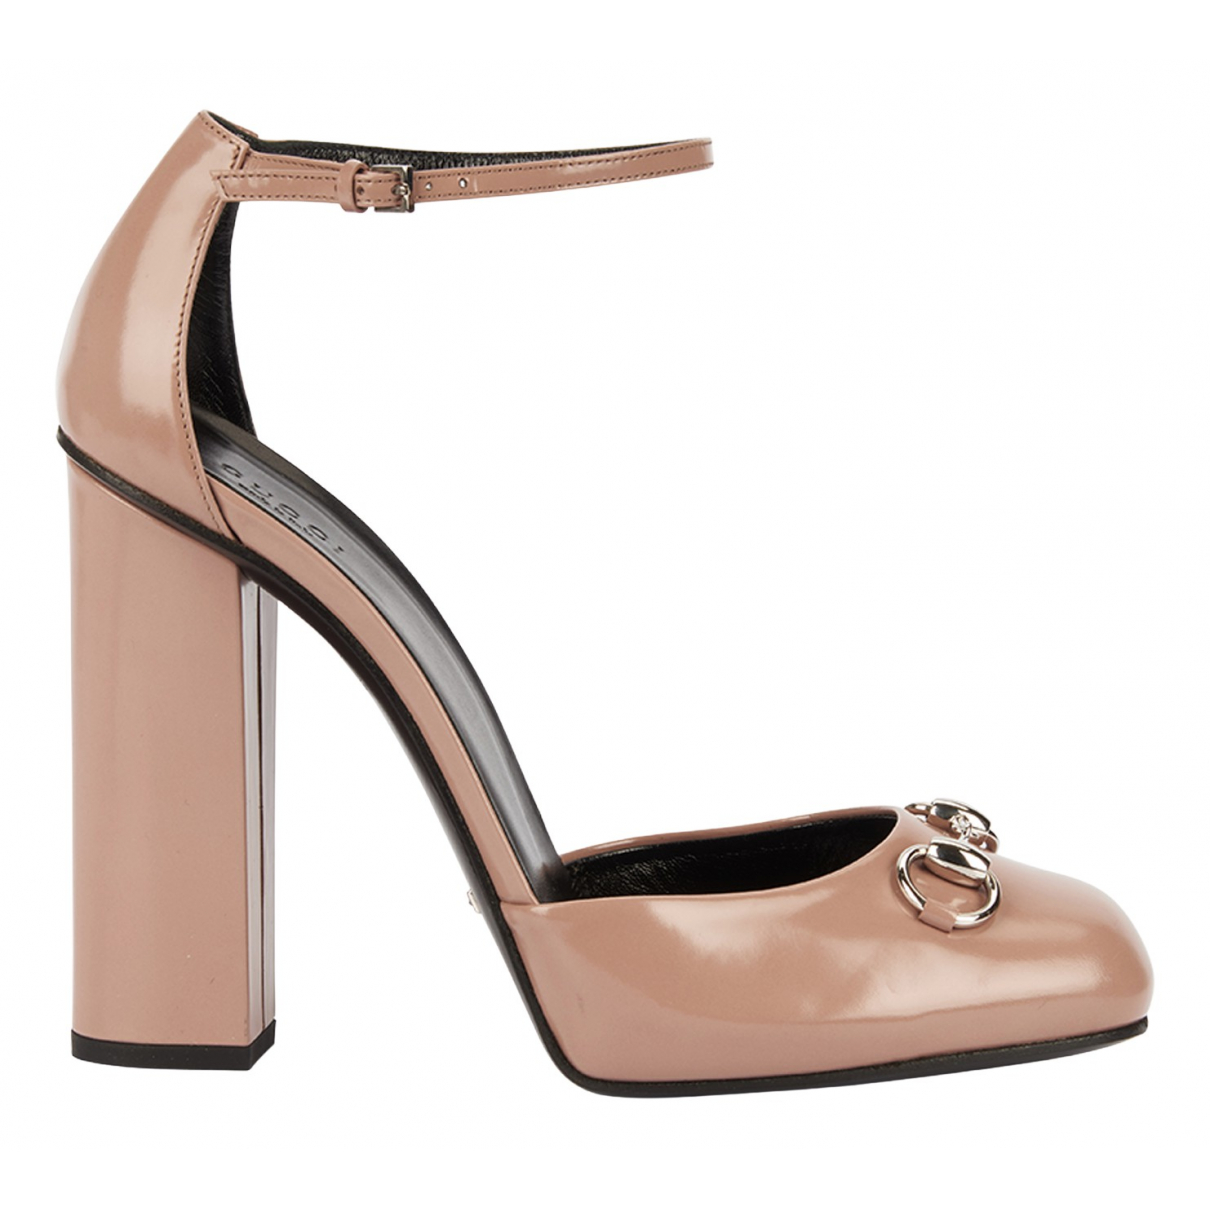 Gucci N Pink Leather Heels for Women 8.5 UK